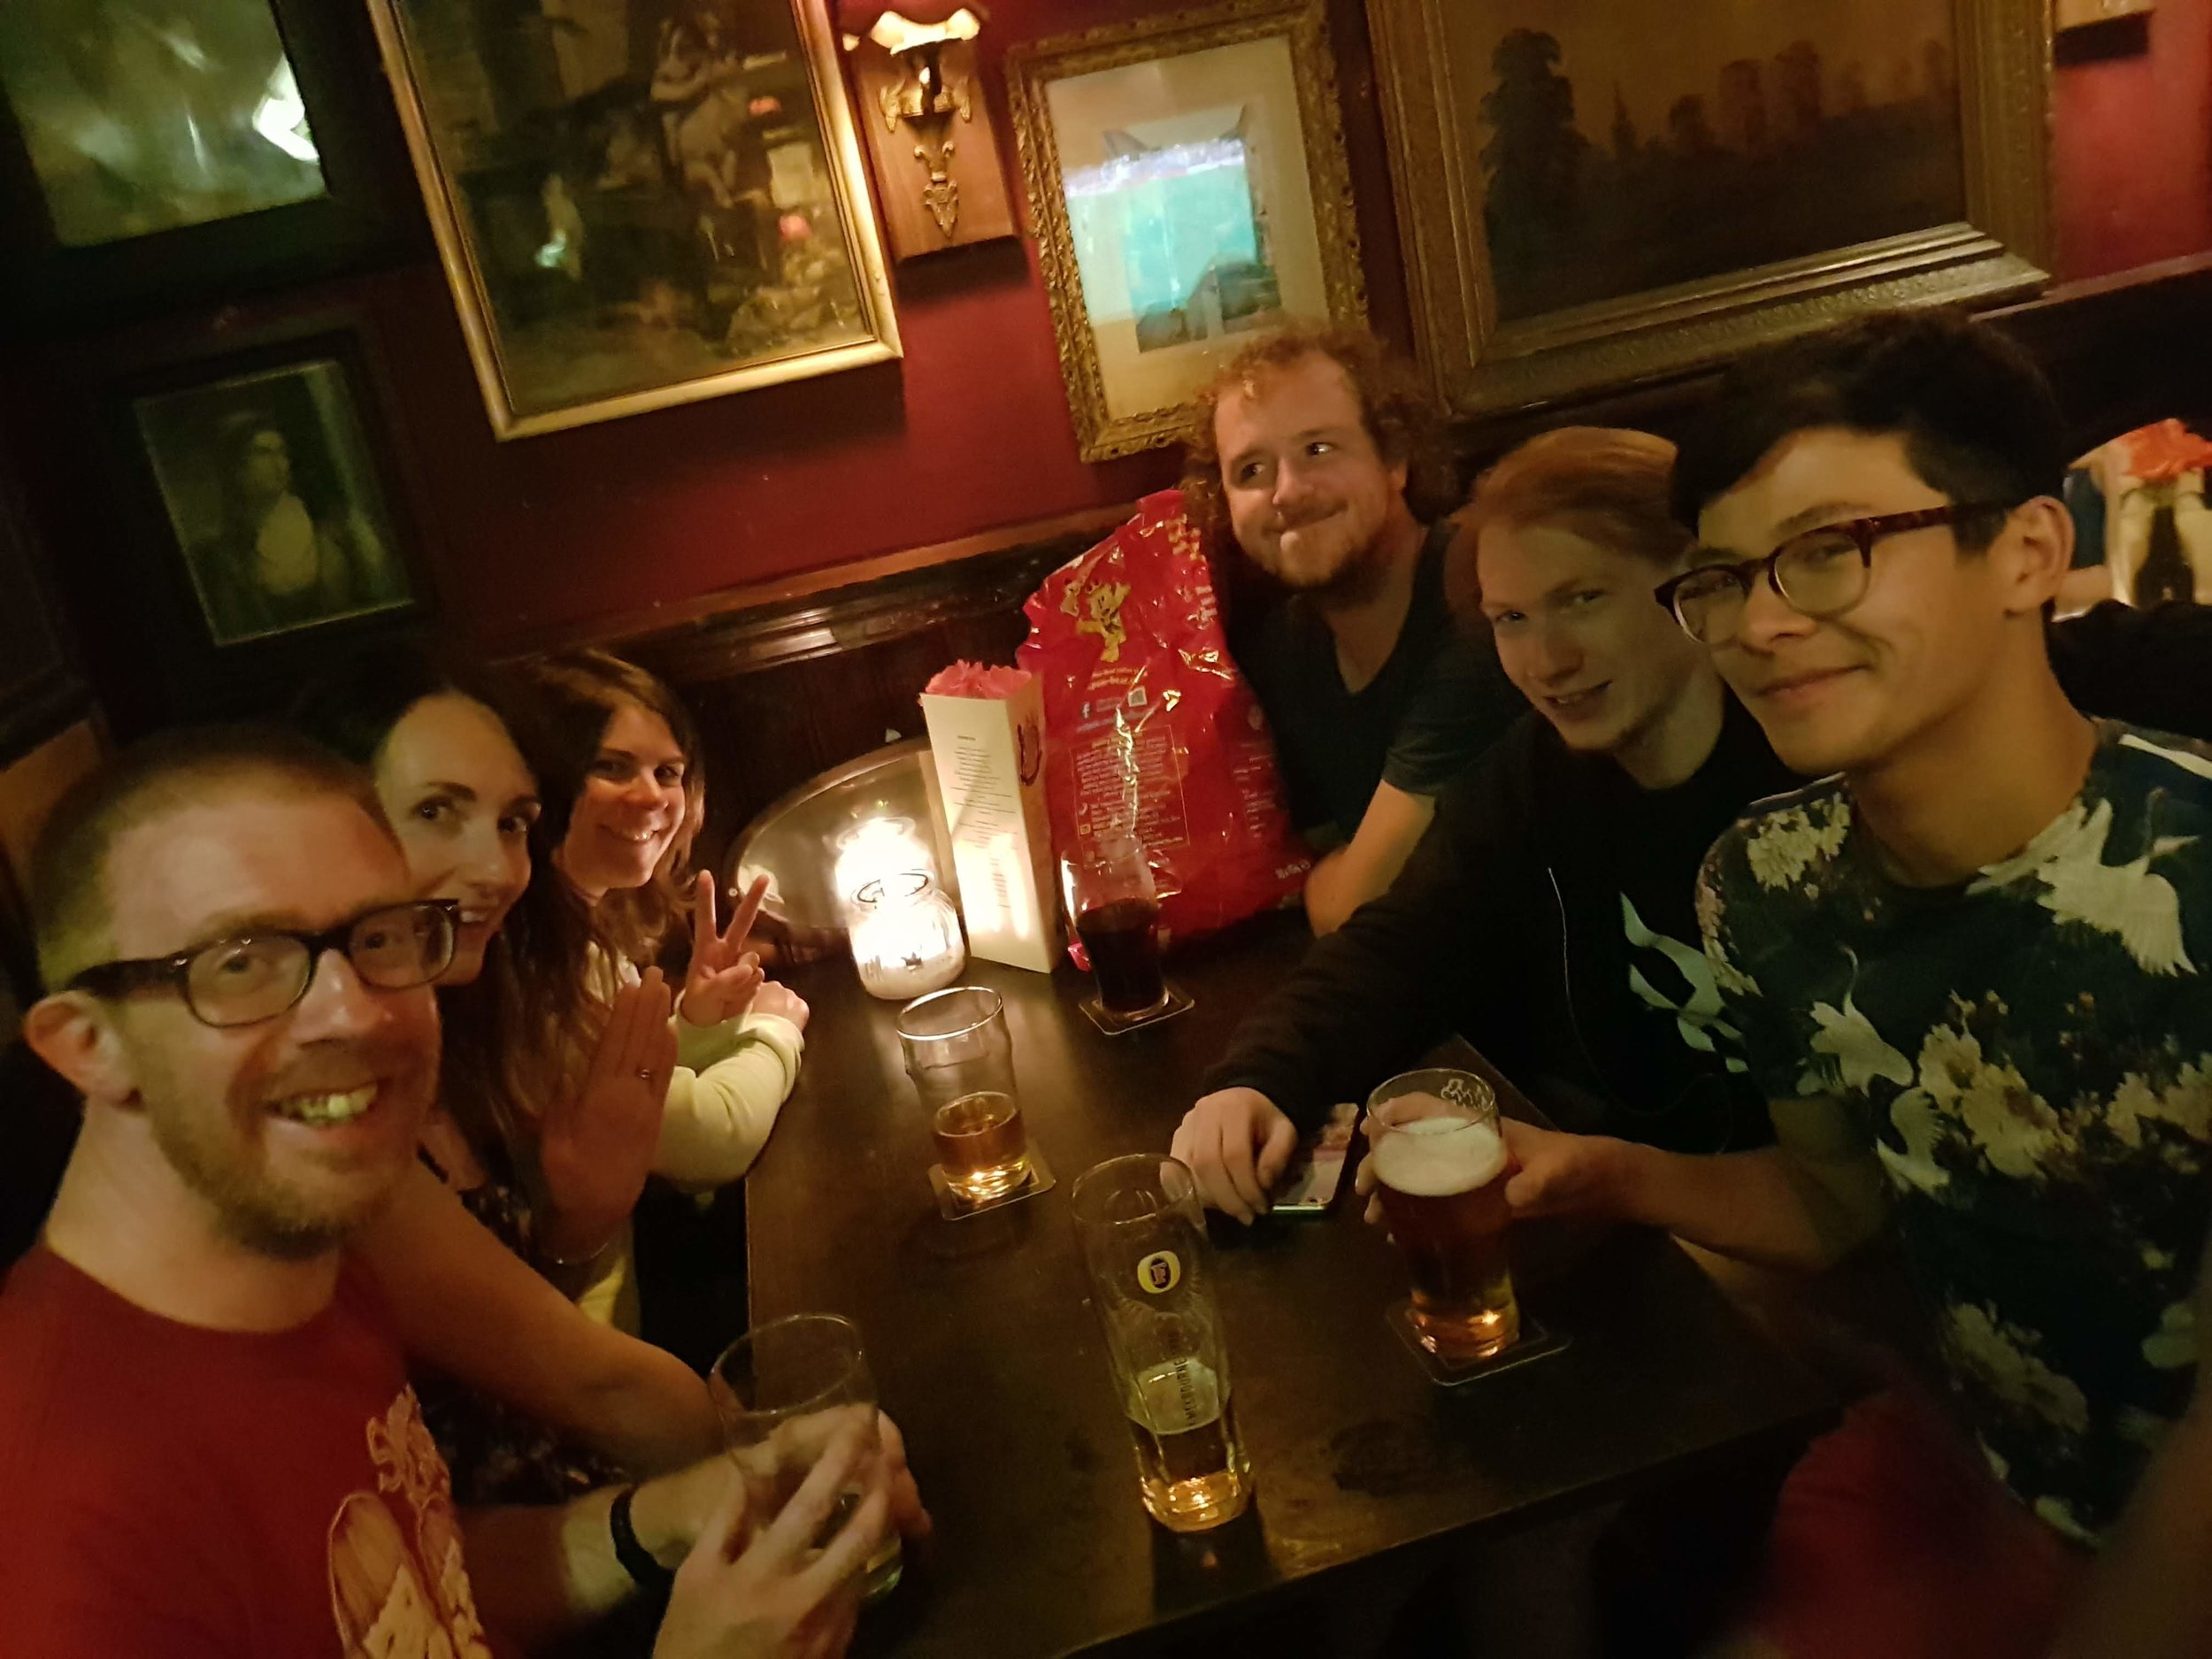 Some of us decanted to a pub, to talk about pub quizzes, parkour and the  Shikoku 88 pilgrimage .